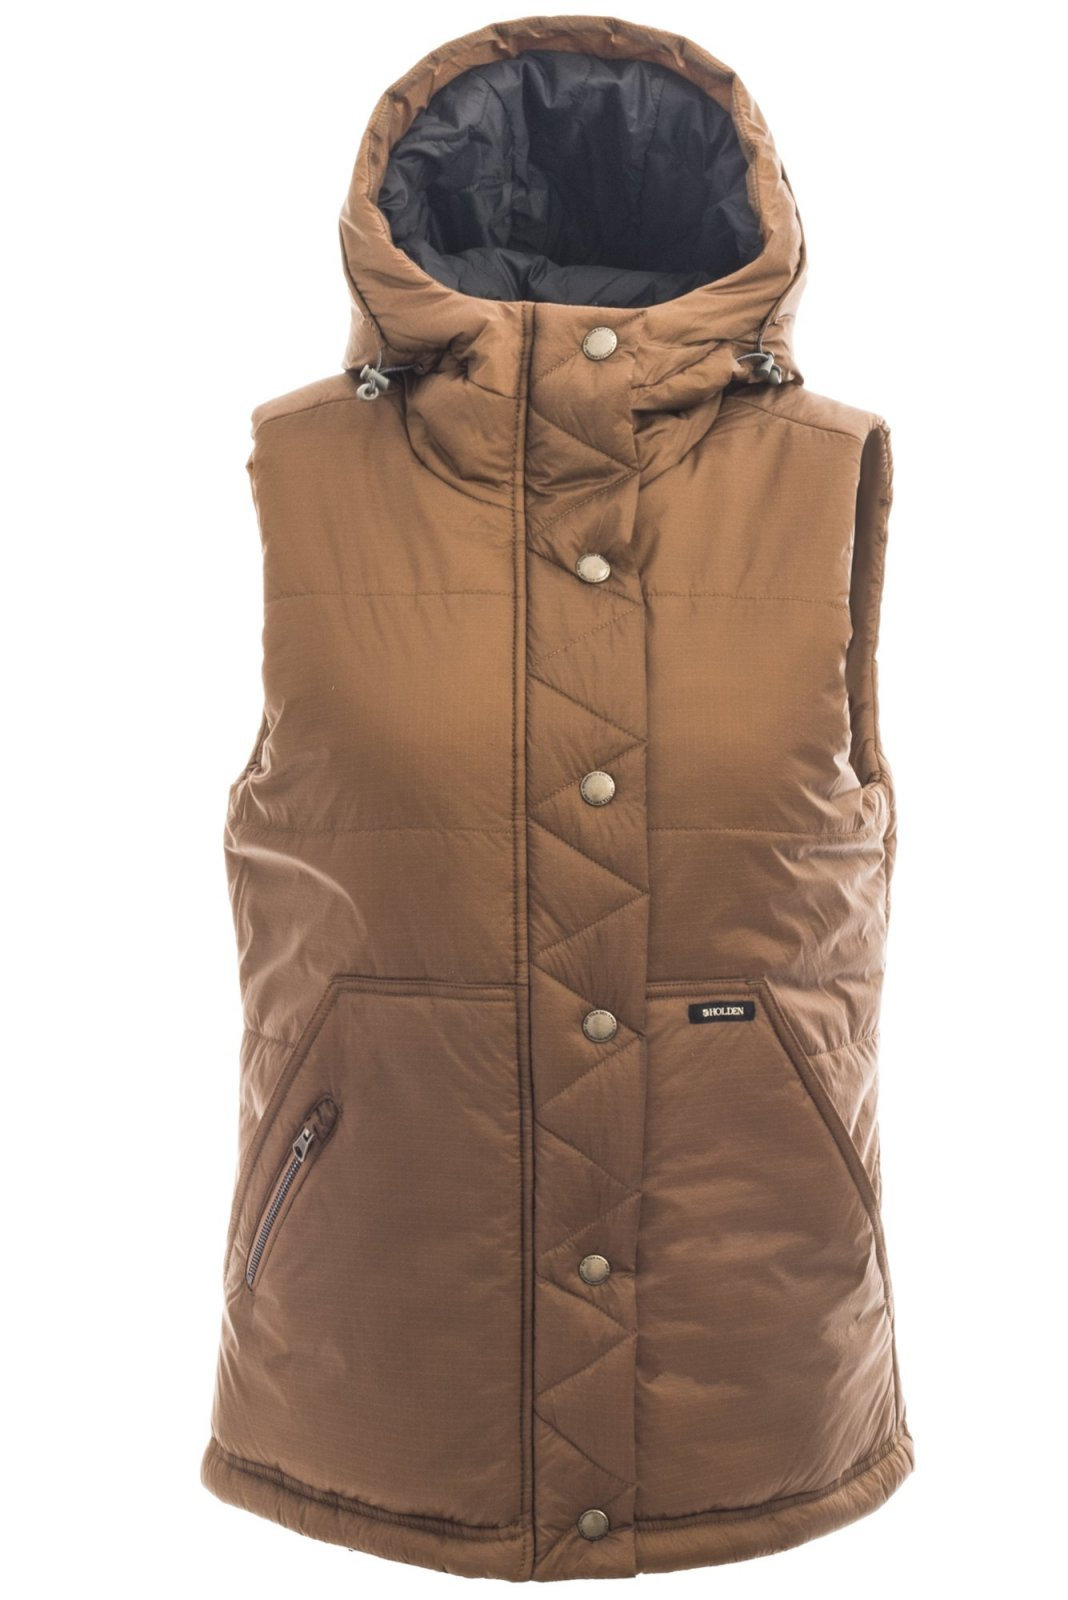 Holden Women's Willow Vest